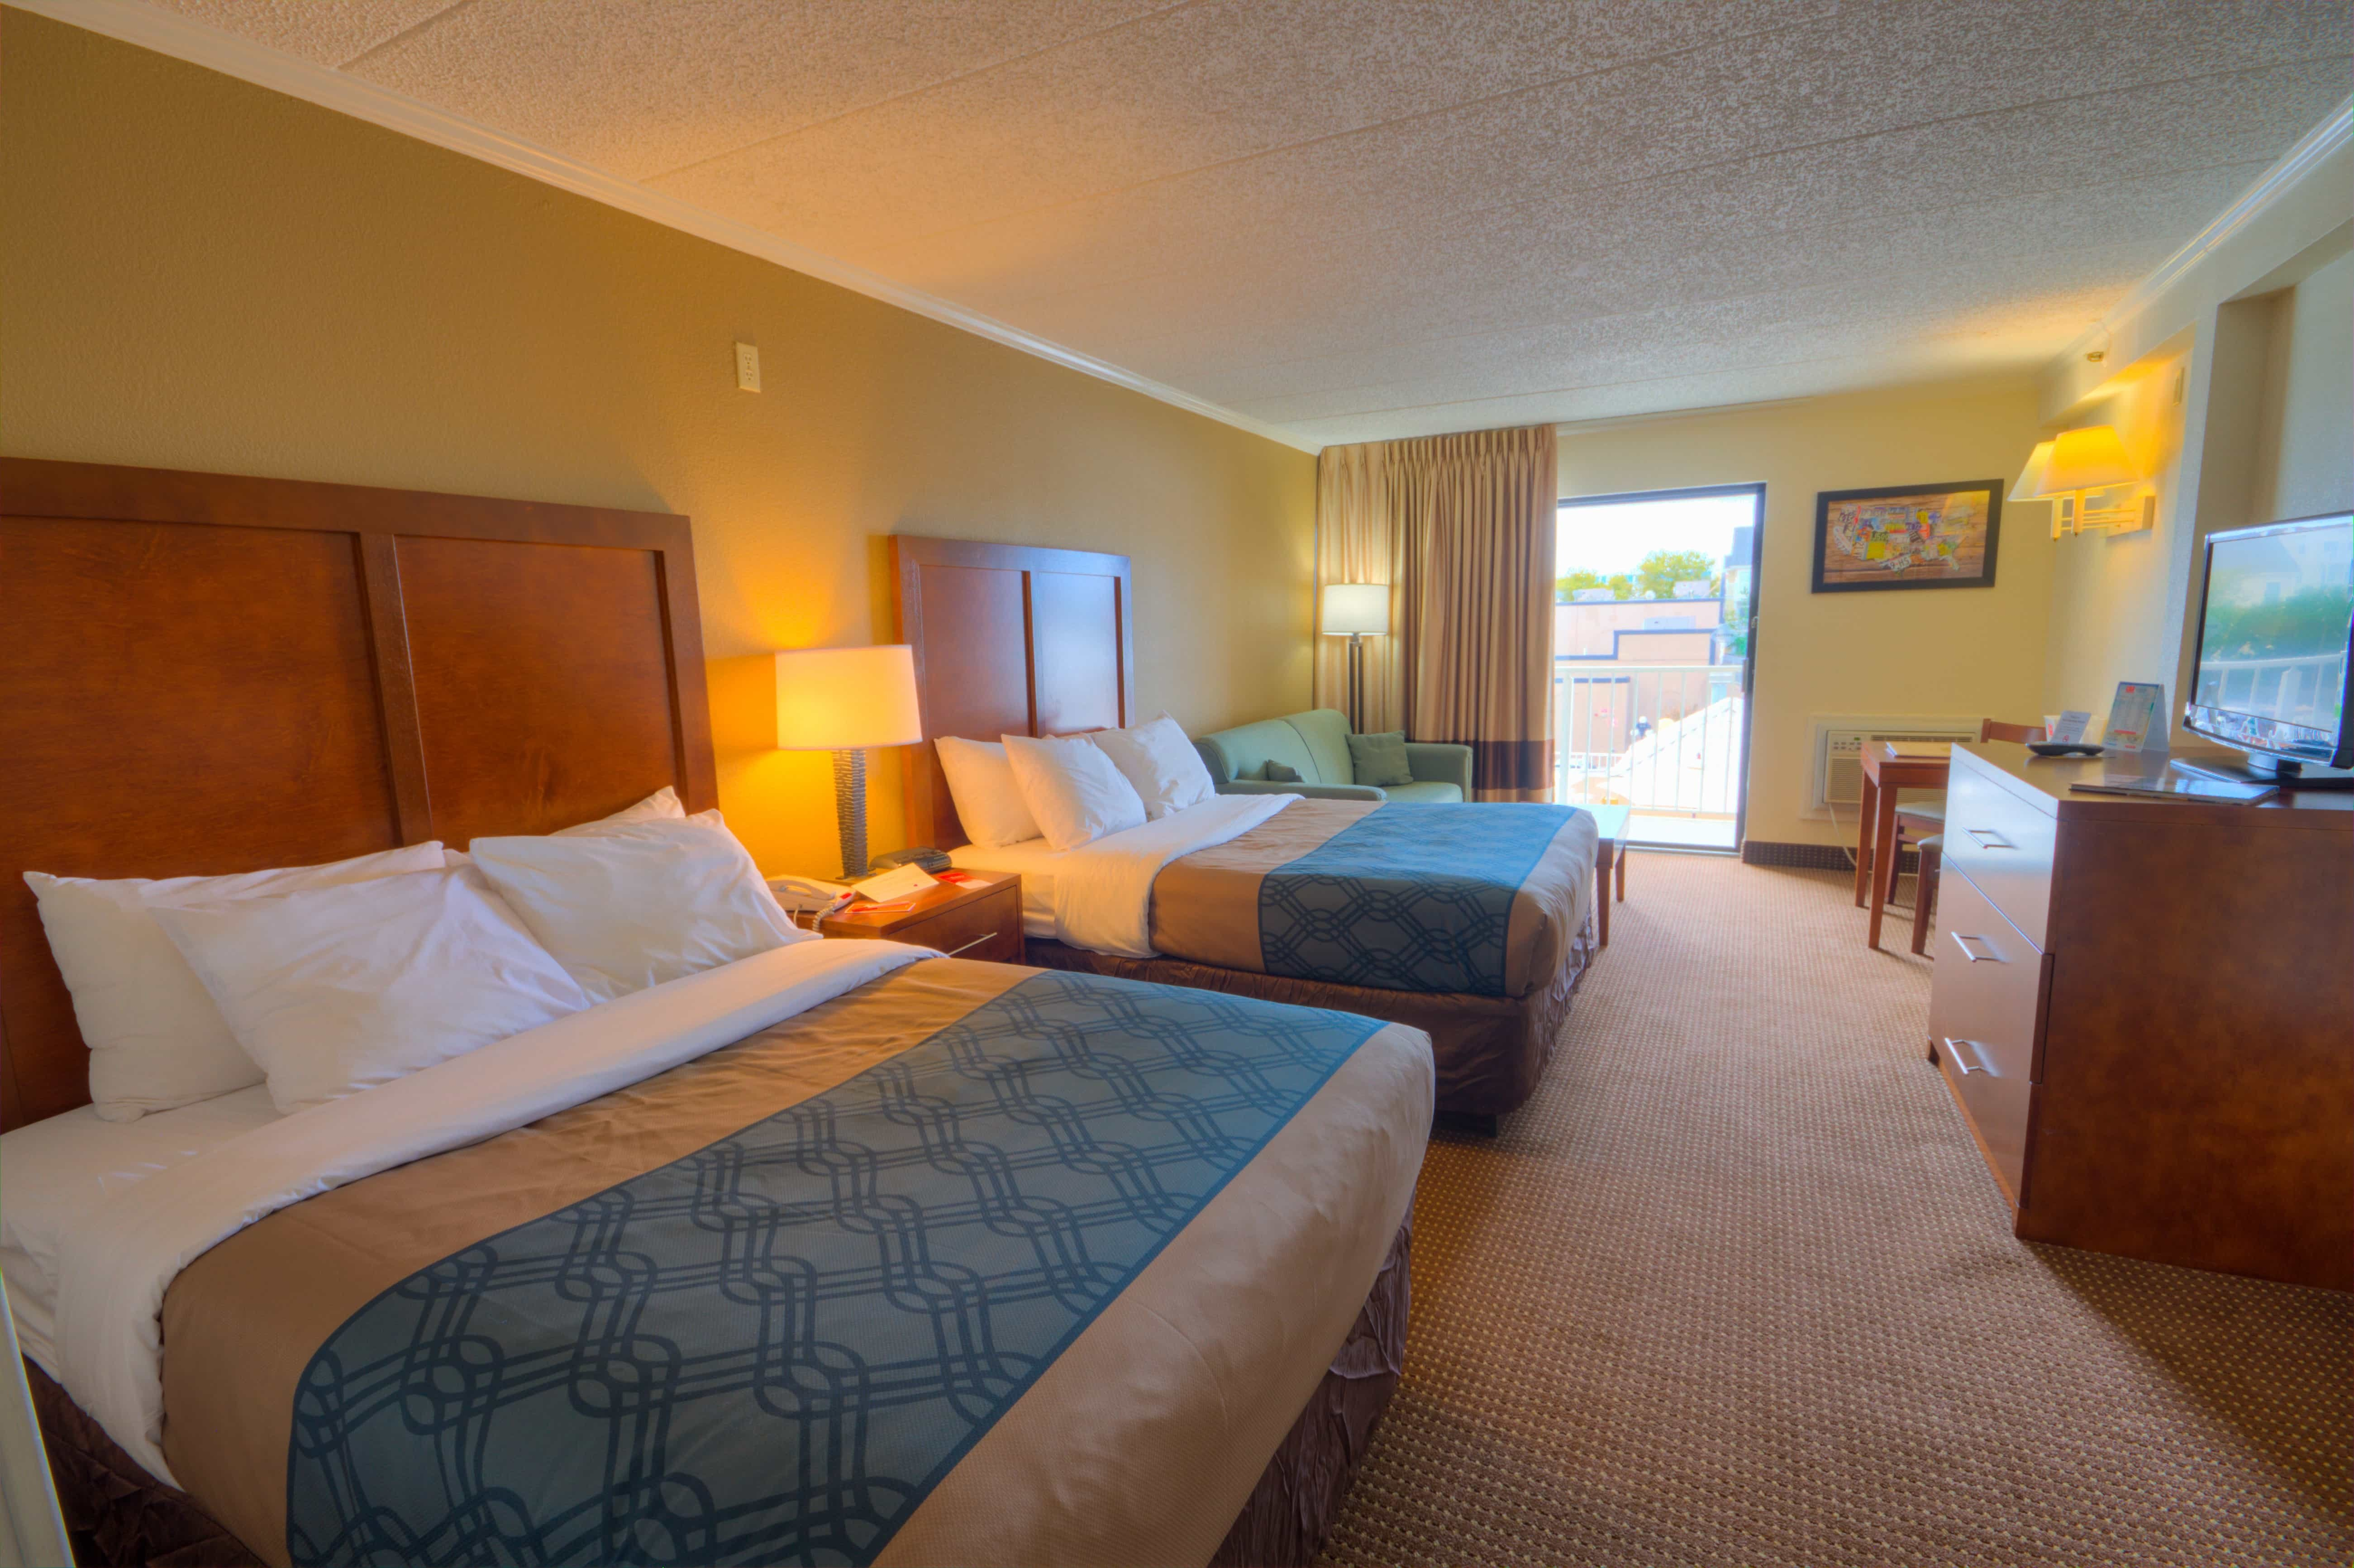 Two double beds in a clean hotel room in ocean city Maryland